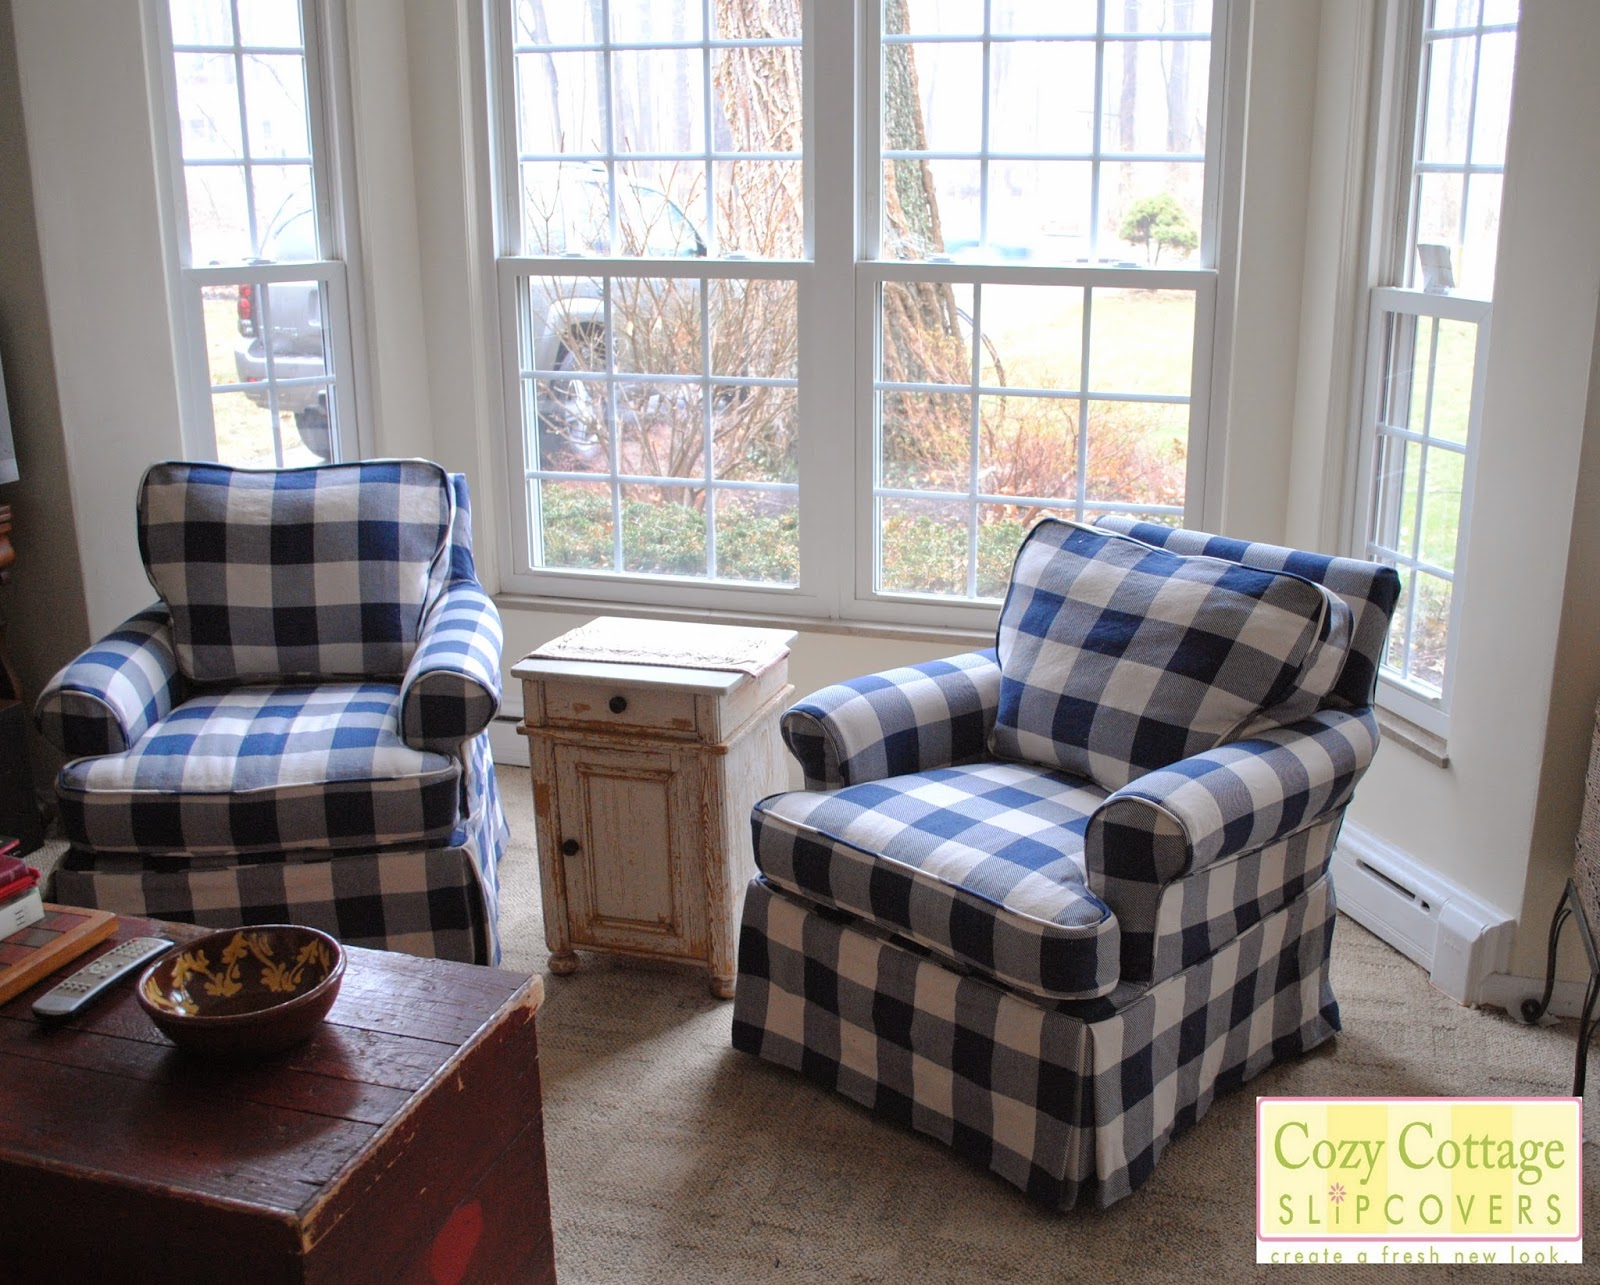 Cozy Cottage Slipcovers